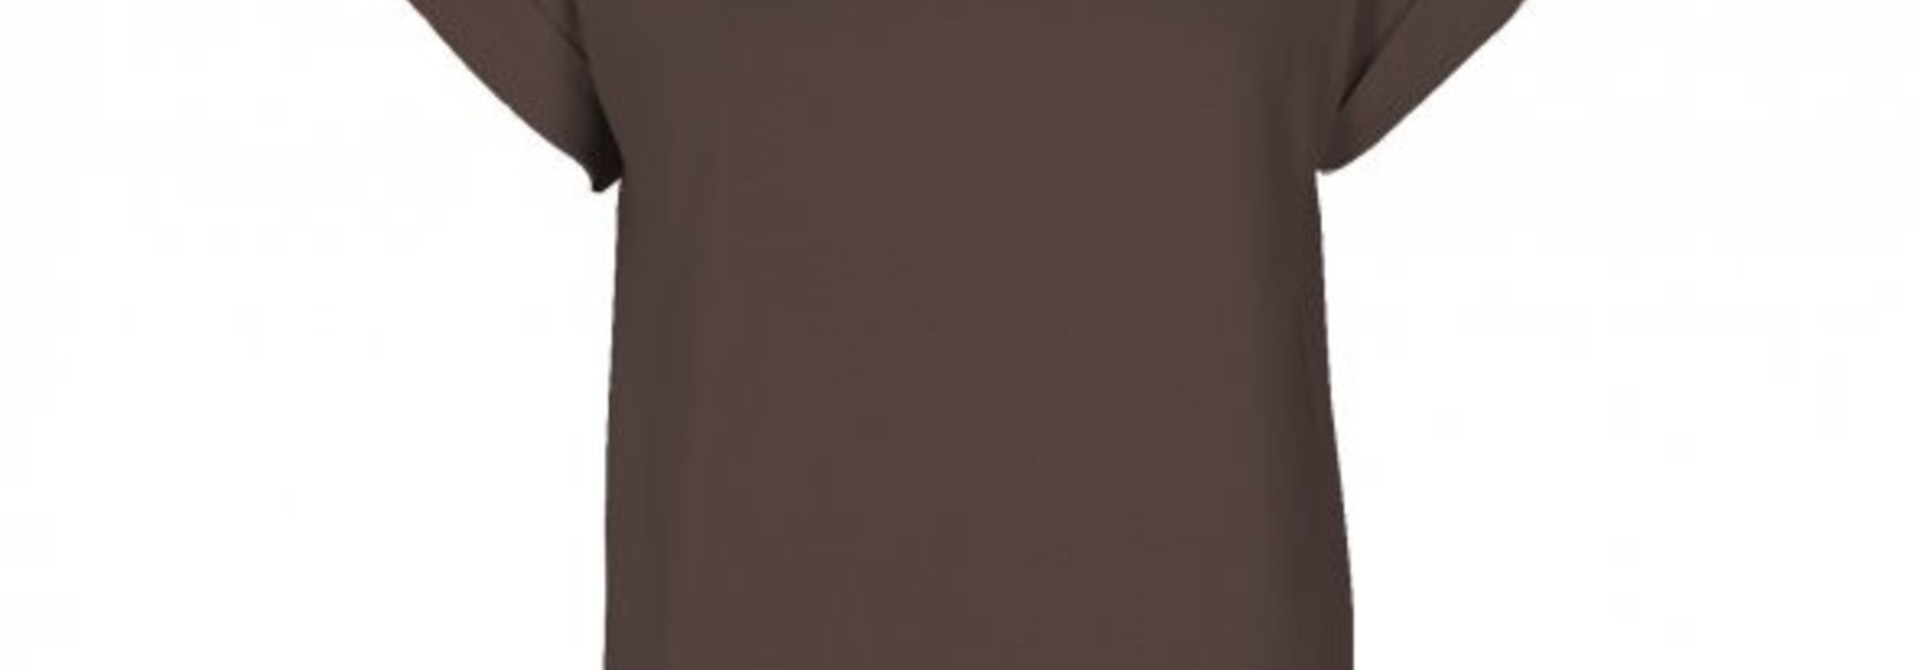 Alva T-shirt Coffee Brown